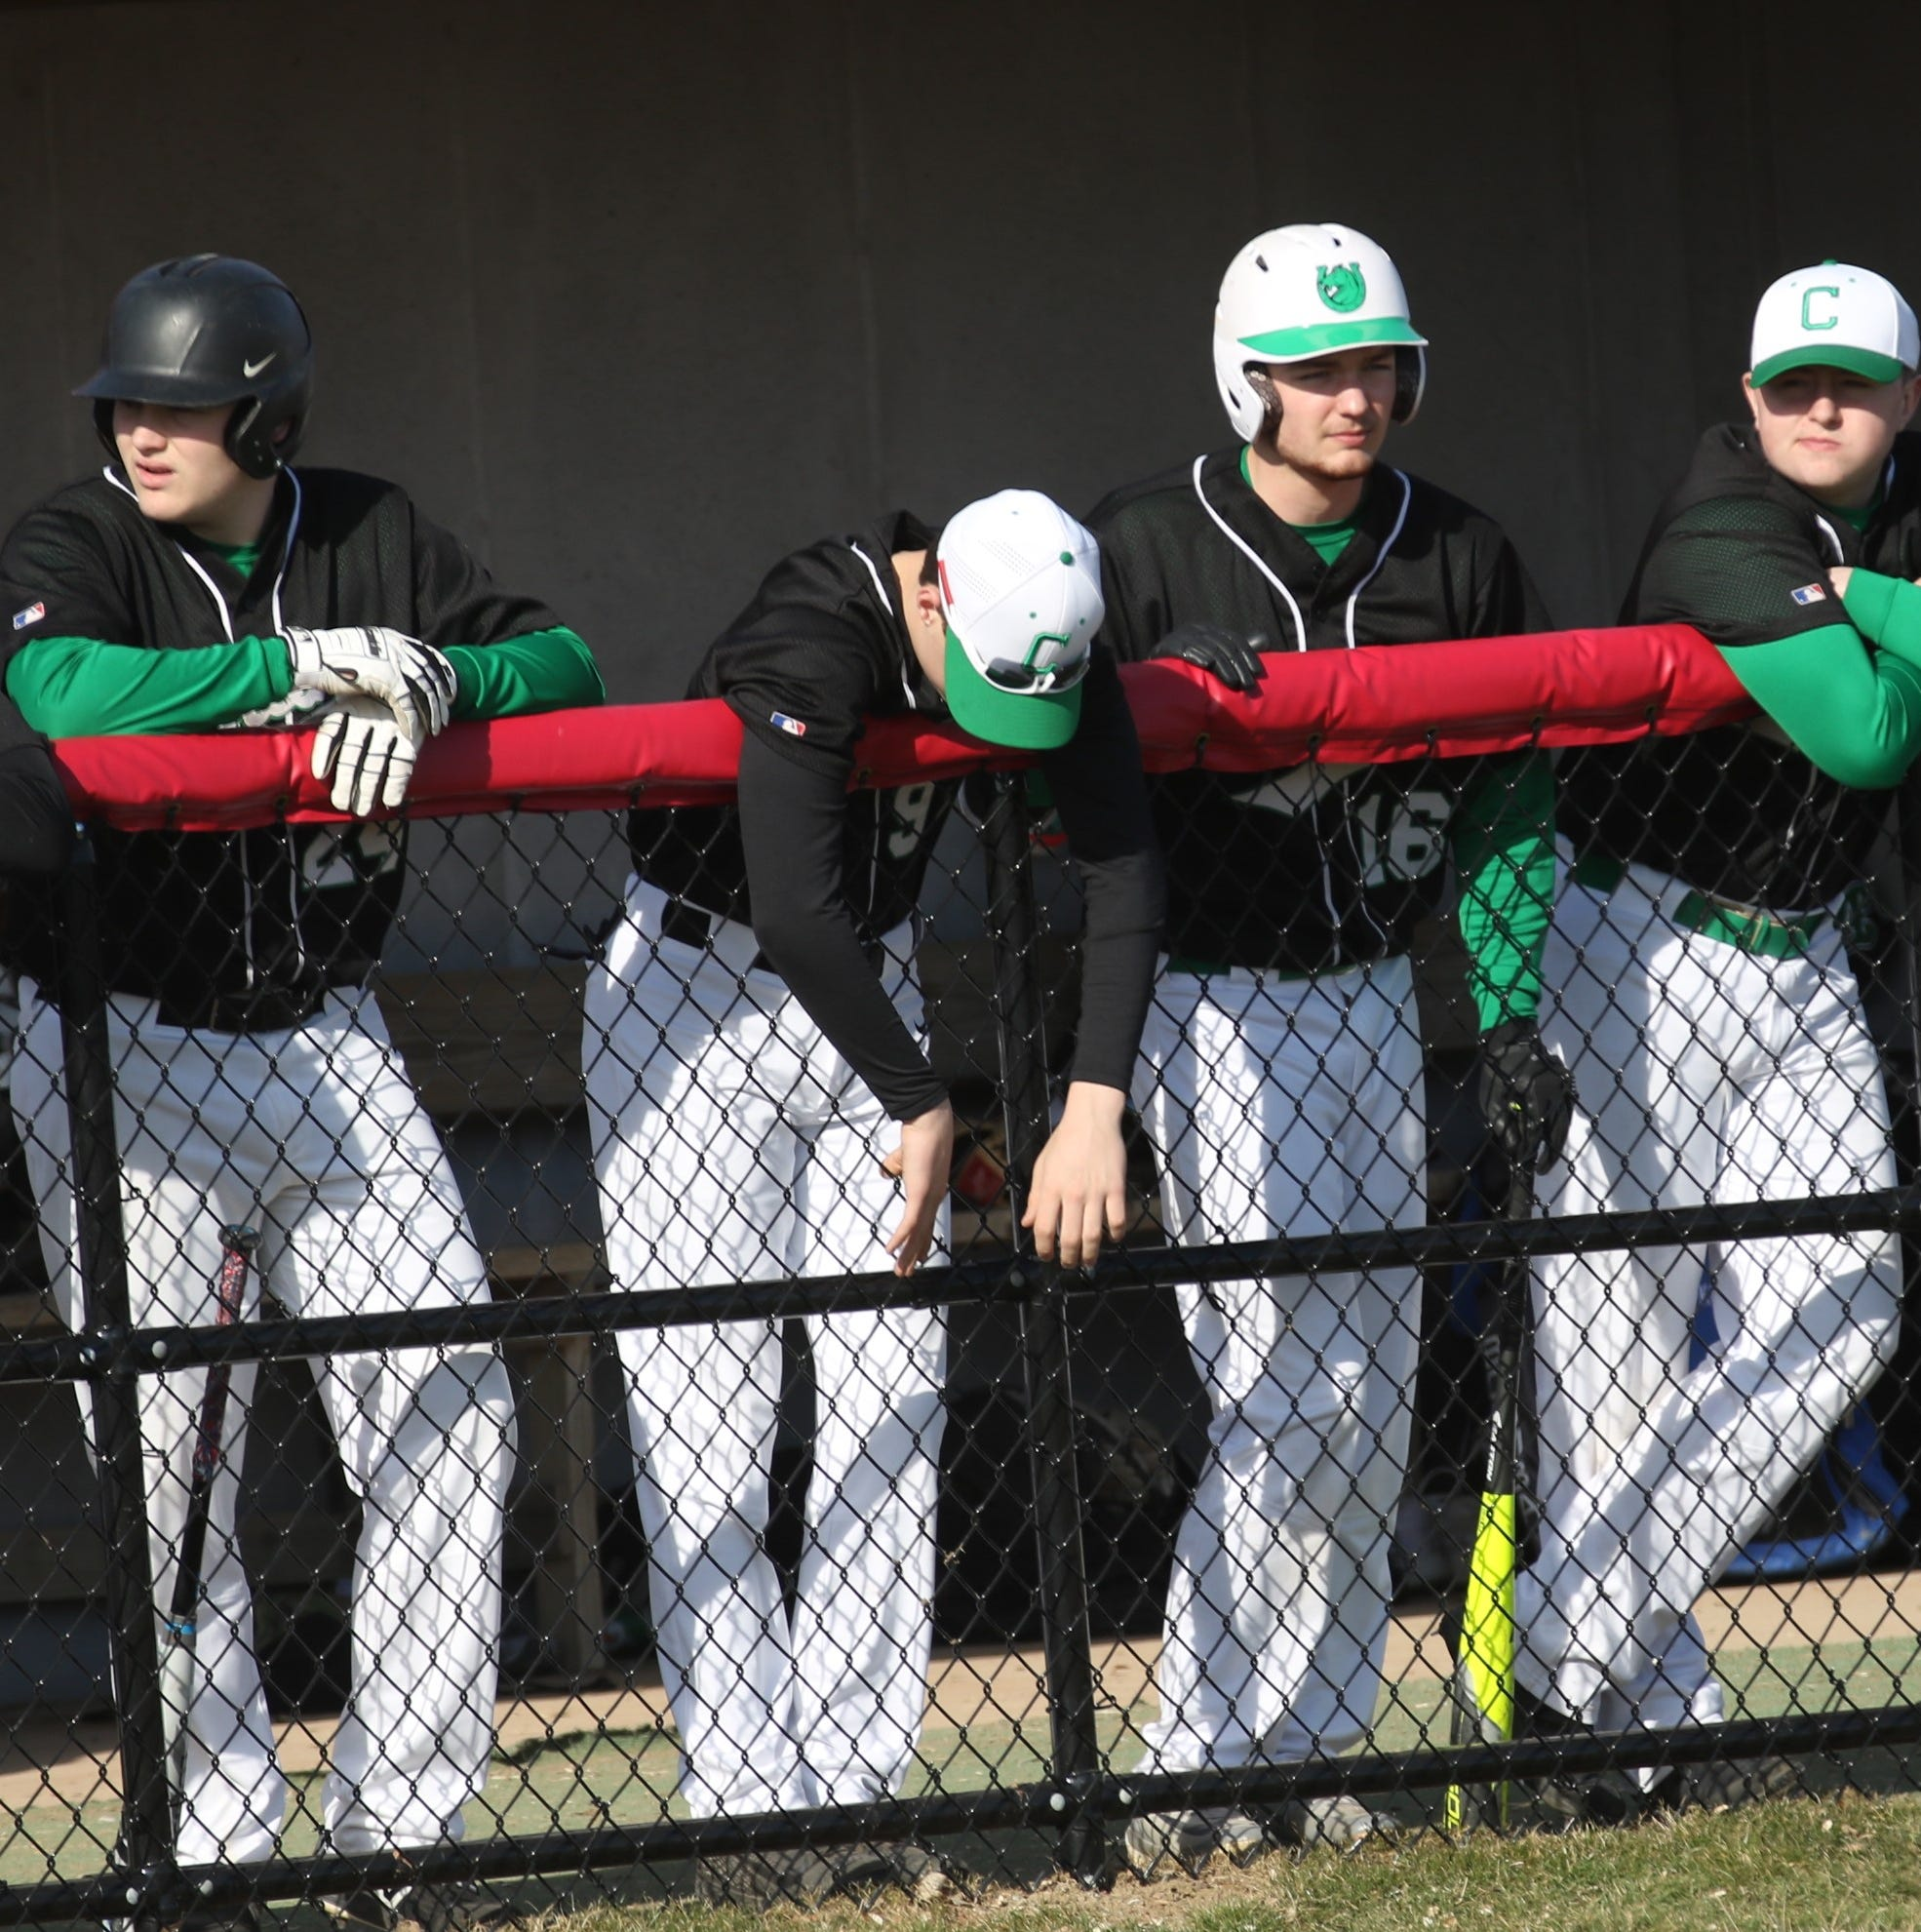 Richland County Baseball Power Poll: As weather warms, teams will heat up